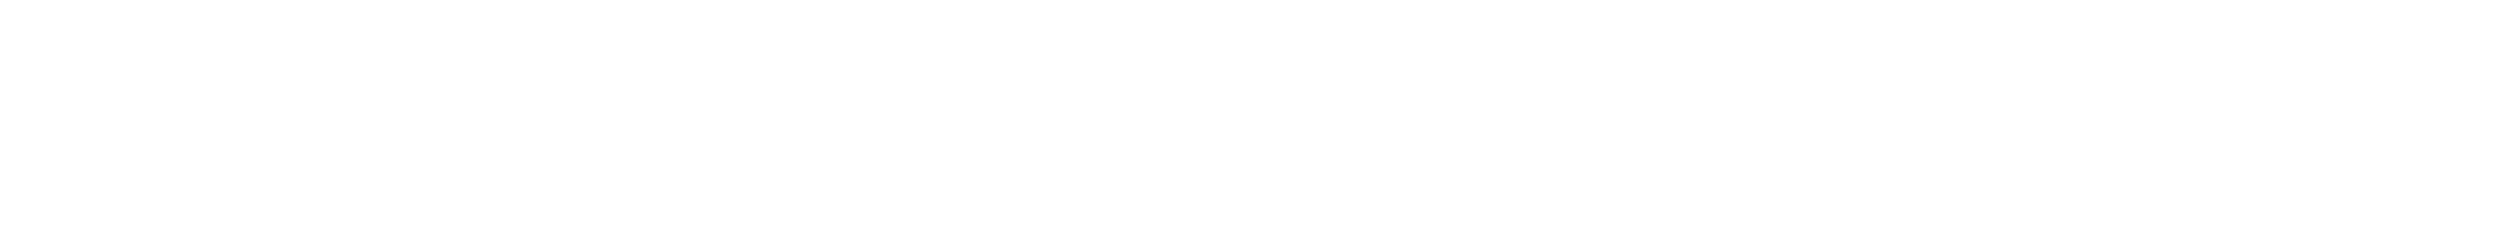 logo-text-wide.png